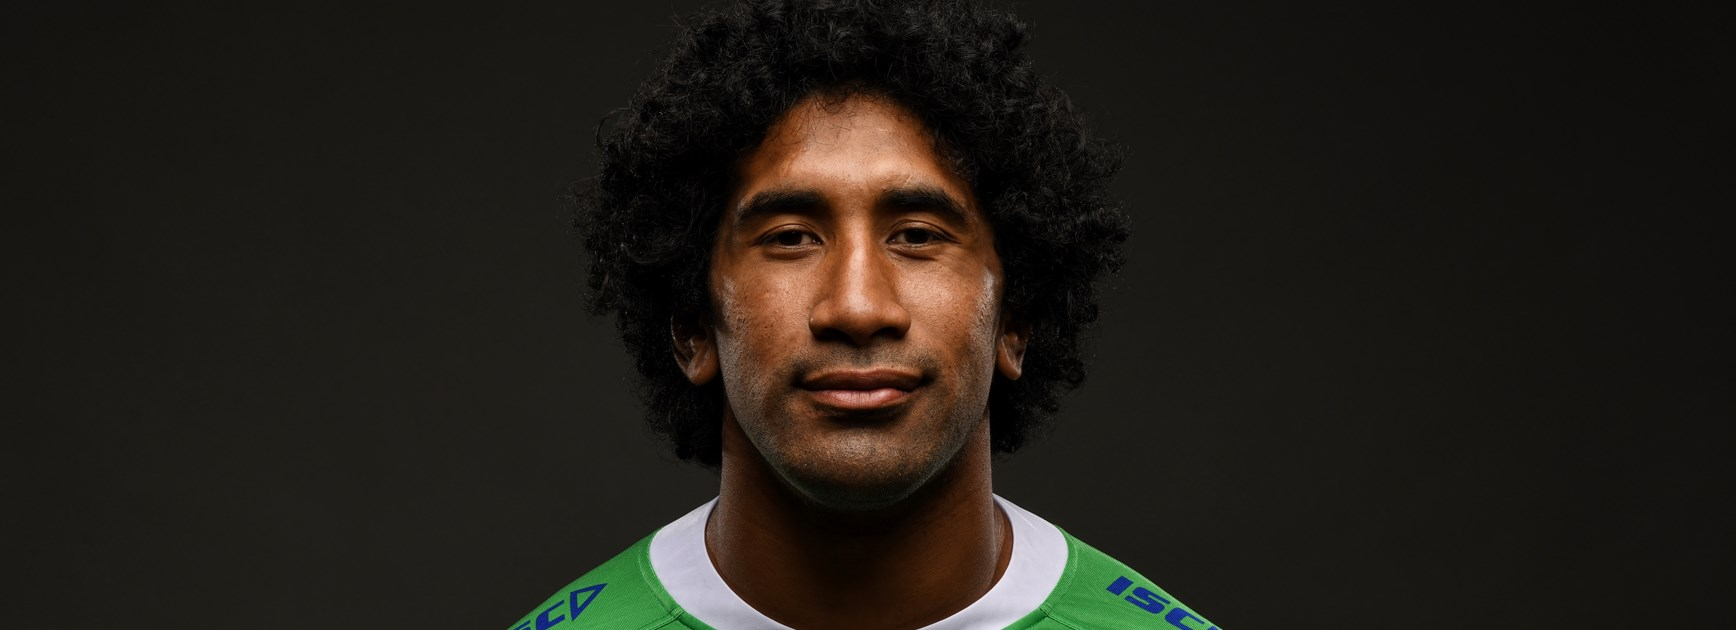 Soliola announced as 2019 Ken Stephen Medalist